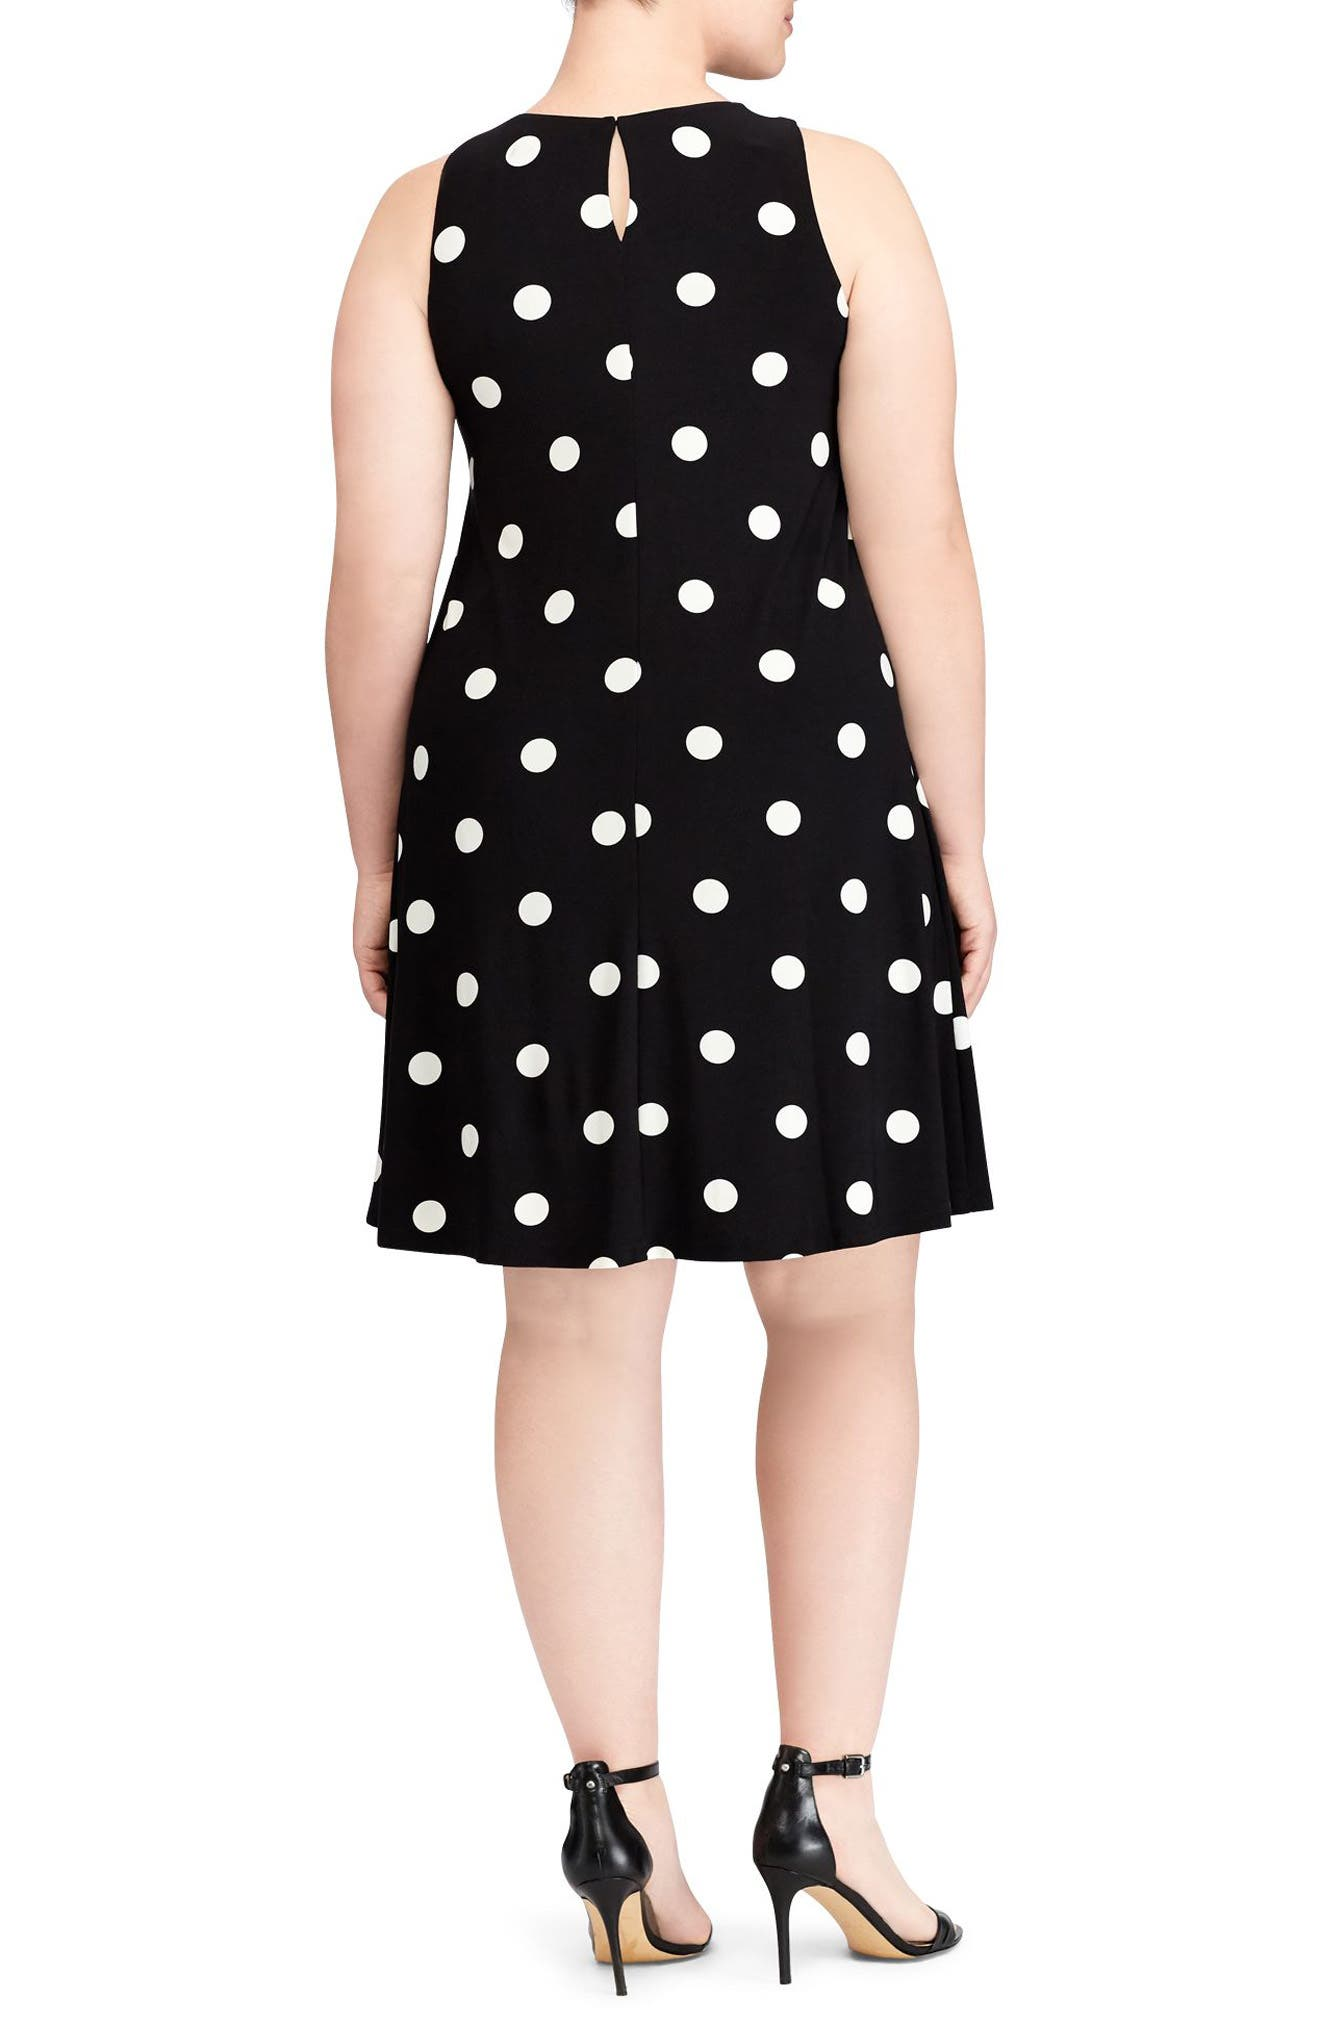 Suzan Peninsula Dot Shift Dress,                             Alternate thumbnail 2, color,                             001